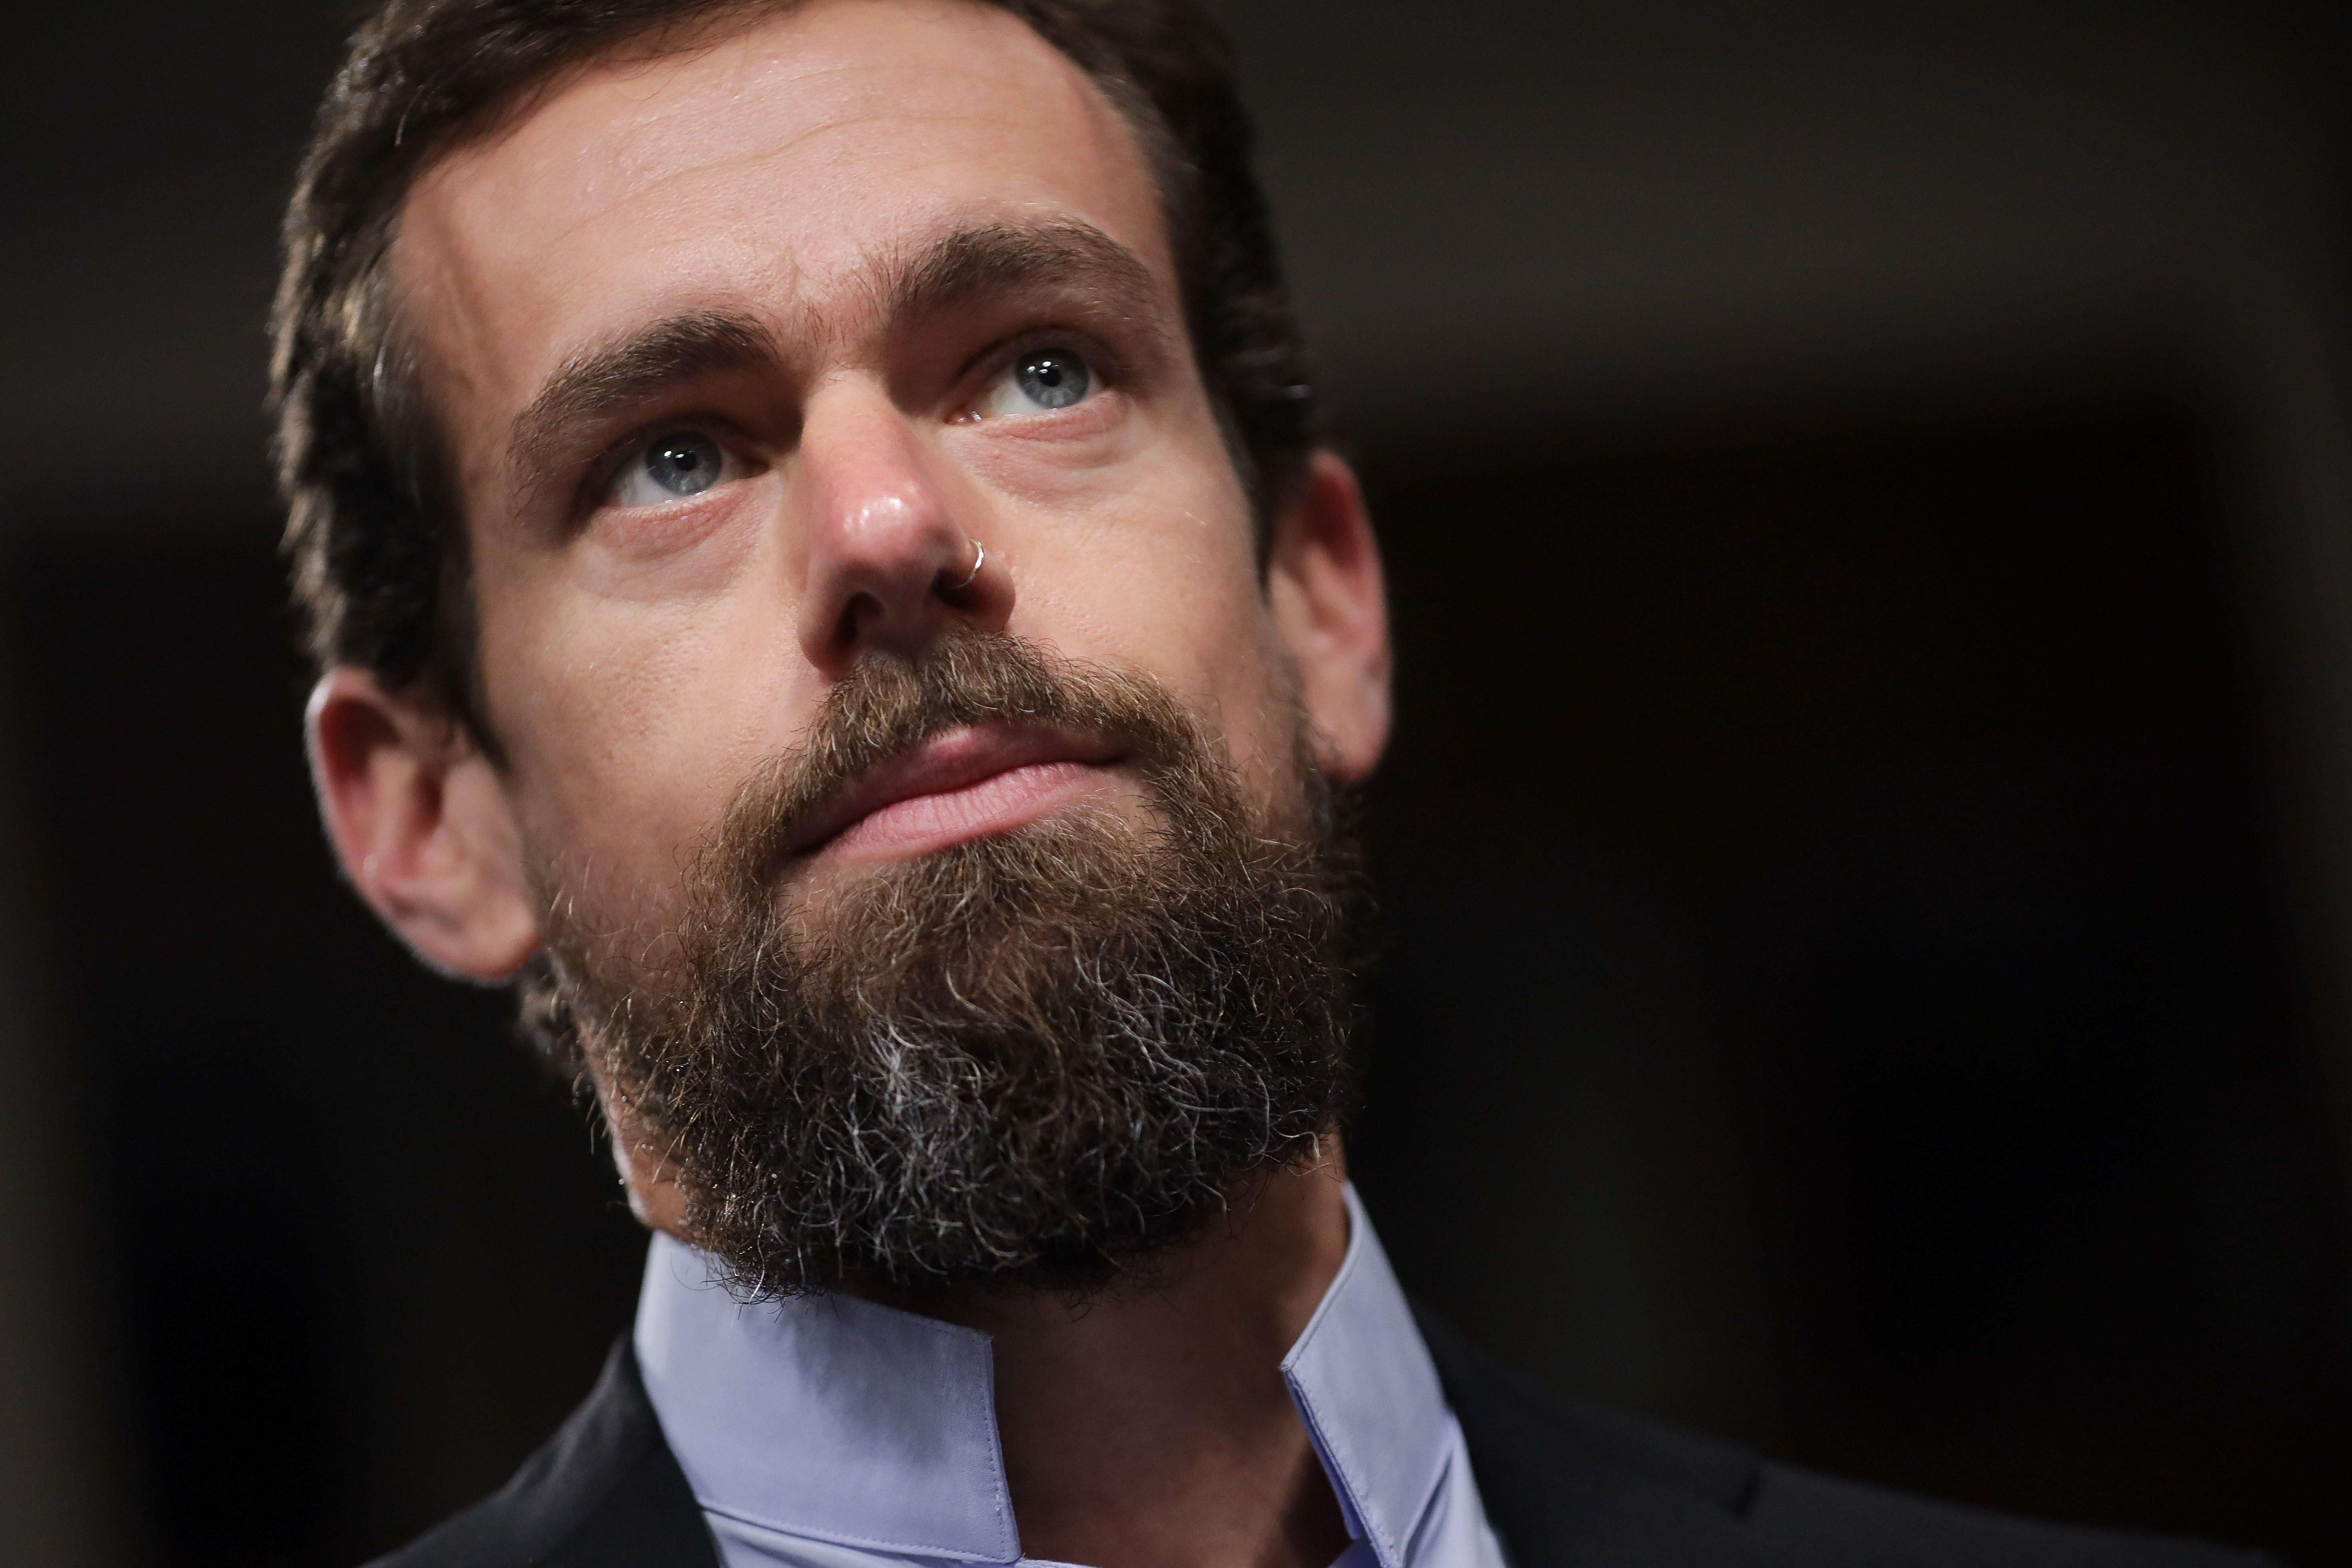 A tight shot of Twitter CEO Jack Dorsey's as he listens to senators